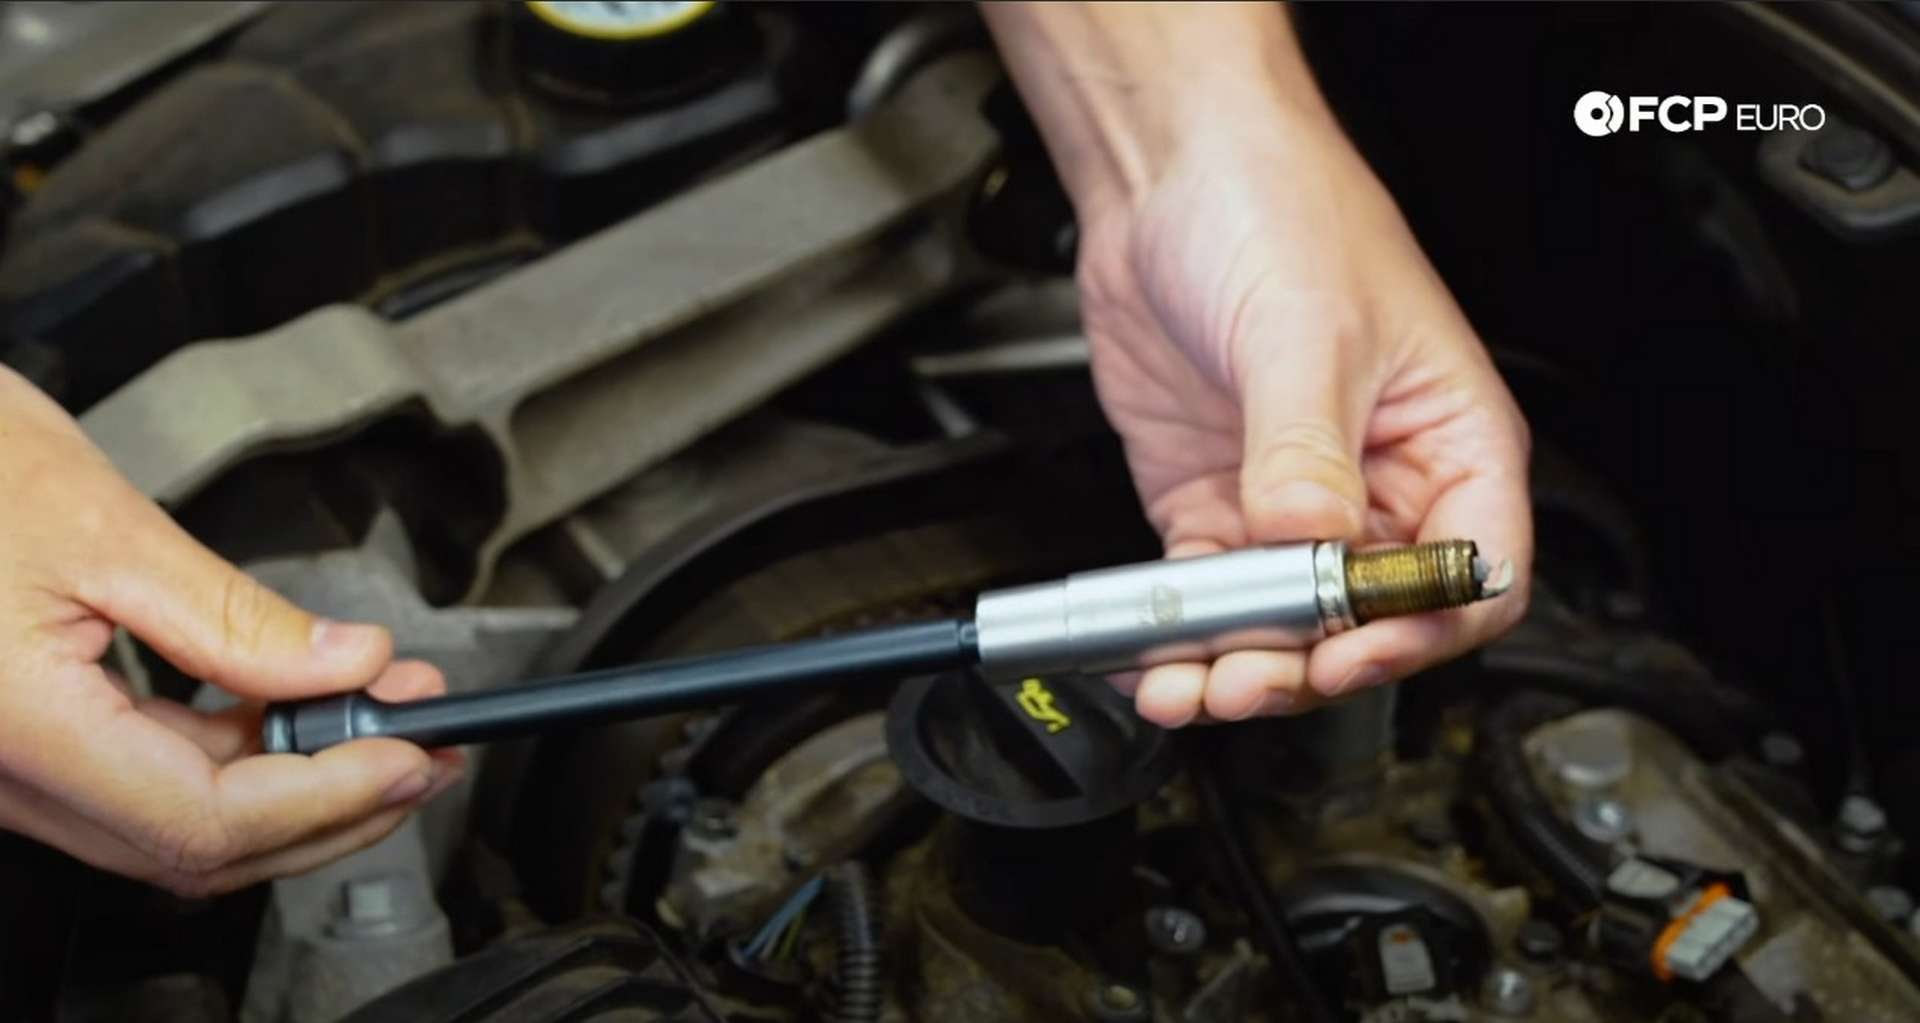 DIY Volvo Spark Plug and Ignition Coil Replacement spark plug removed in the socket